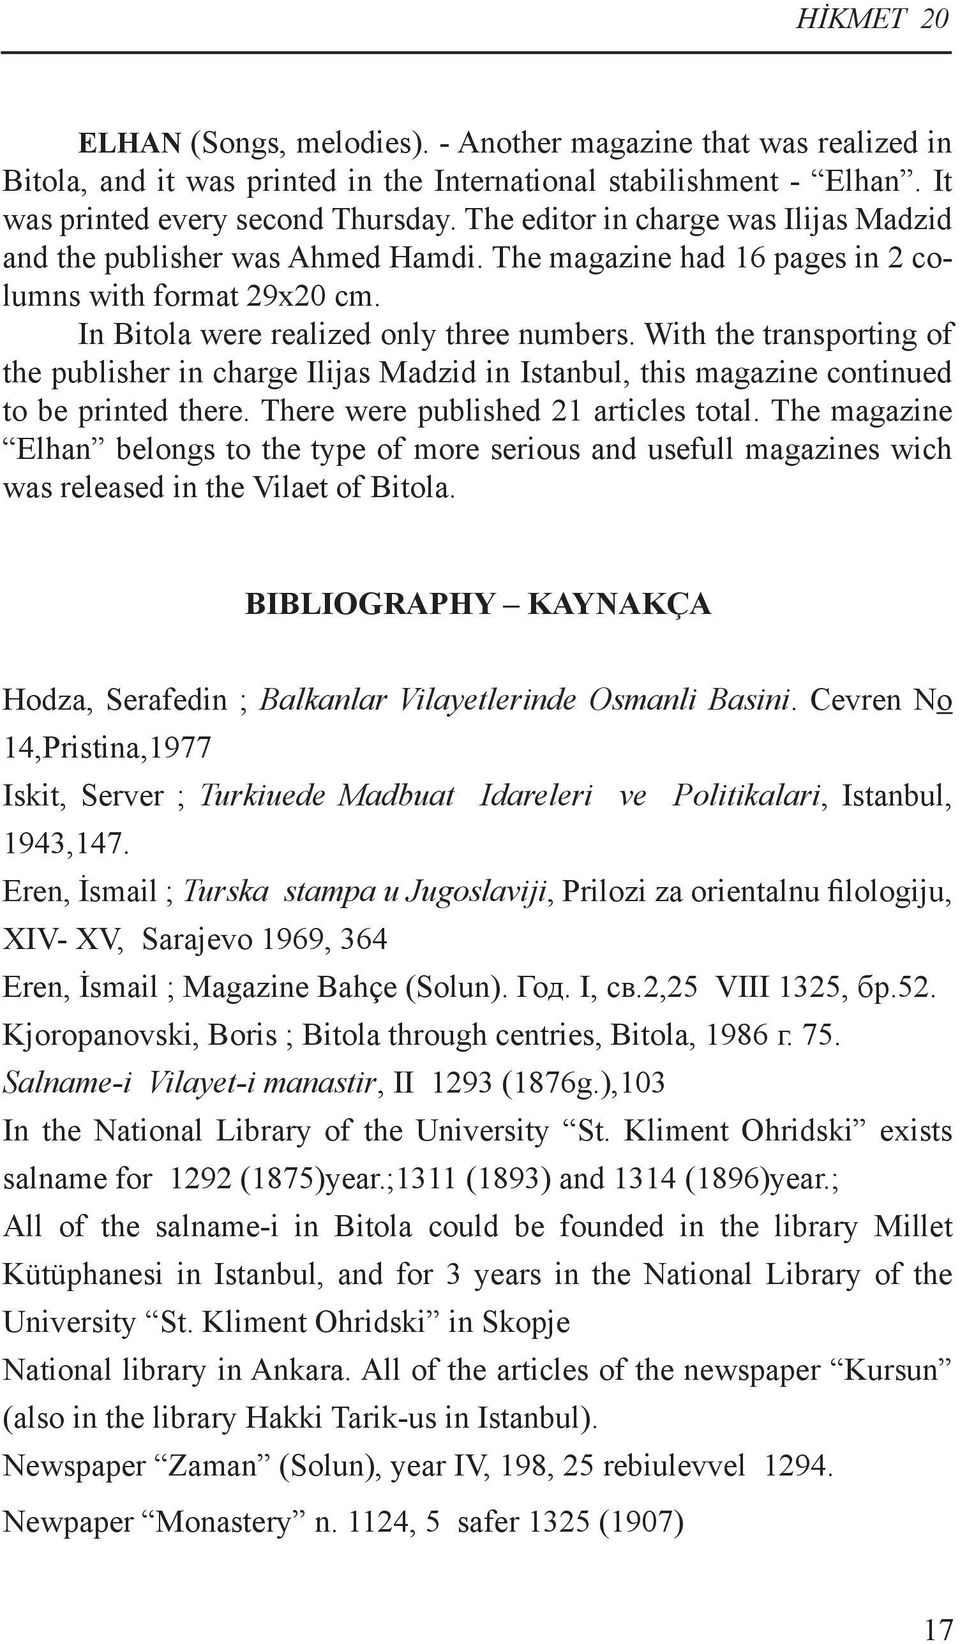 With the transporting of the publisher in charge Ilijas Madzid in Istanbul, this magazine continued to be printed there. There were published 21 articles total.